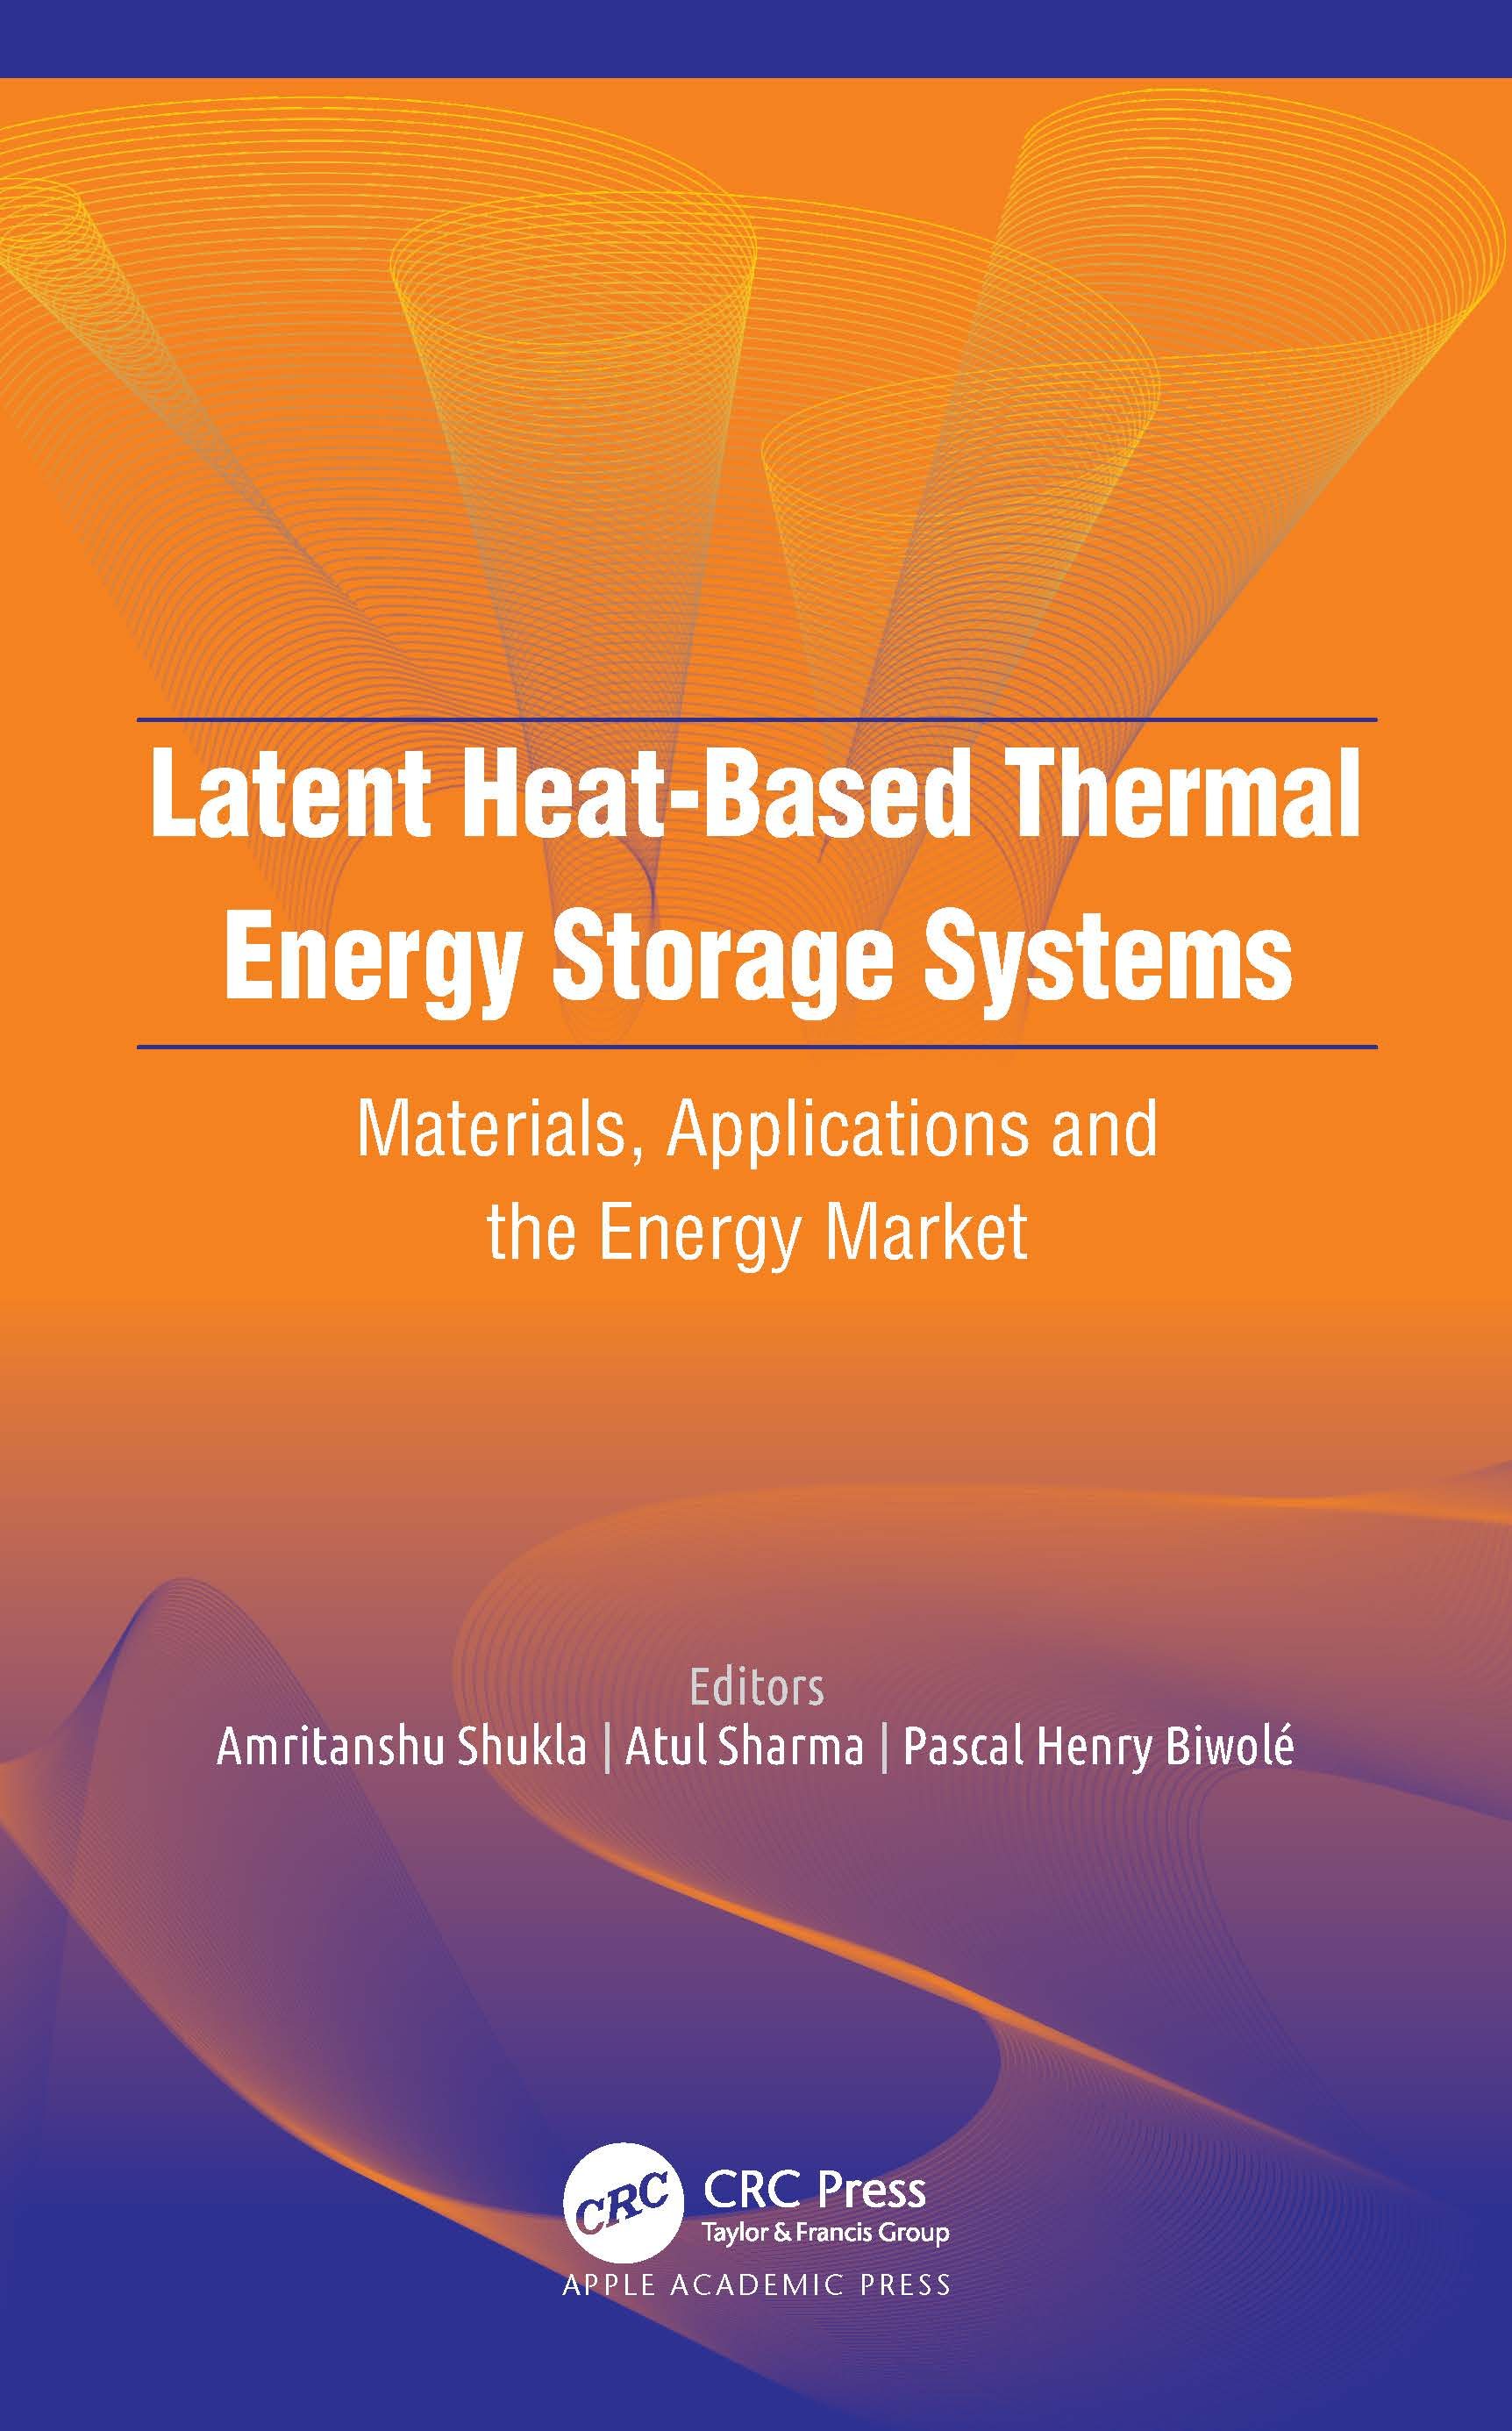 Latent Heat-Based Thermal Energy Storage Systems: Materials, Applications, and the Energy Market book cover